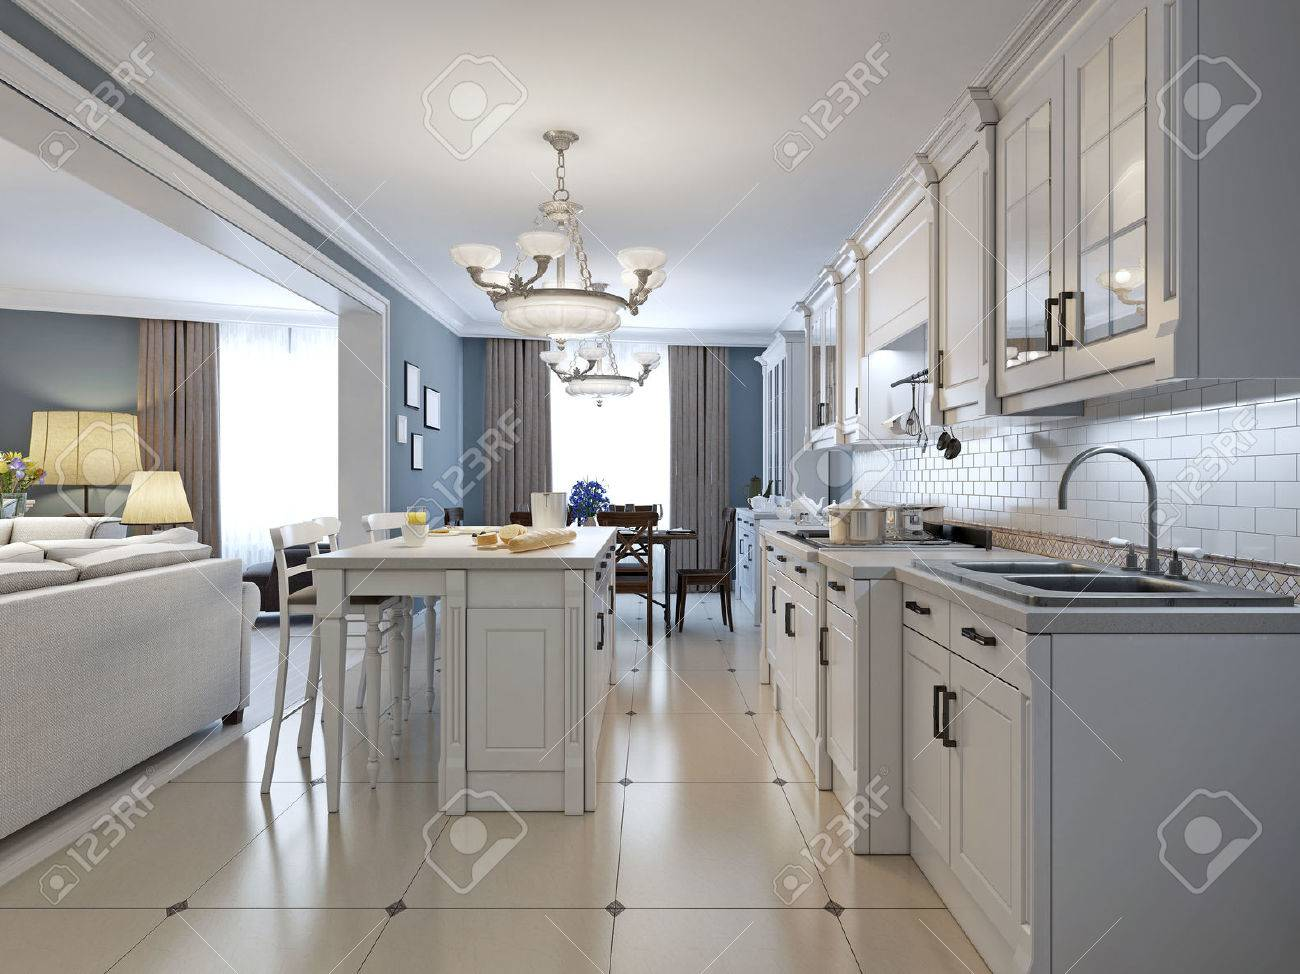 kitchen with stainless steel appliances white cabinets white